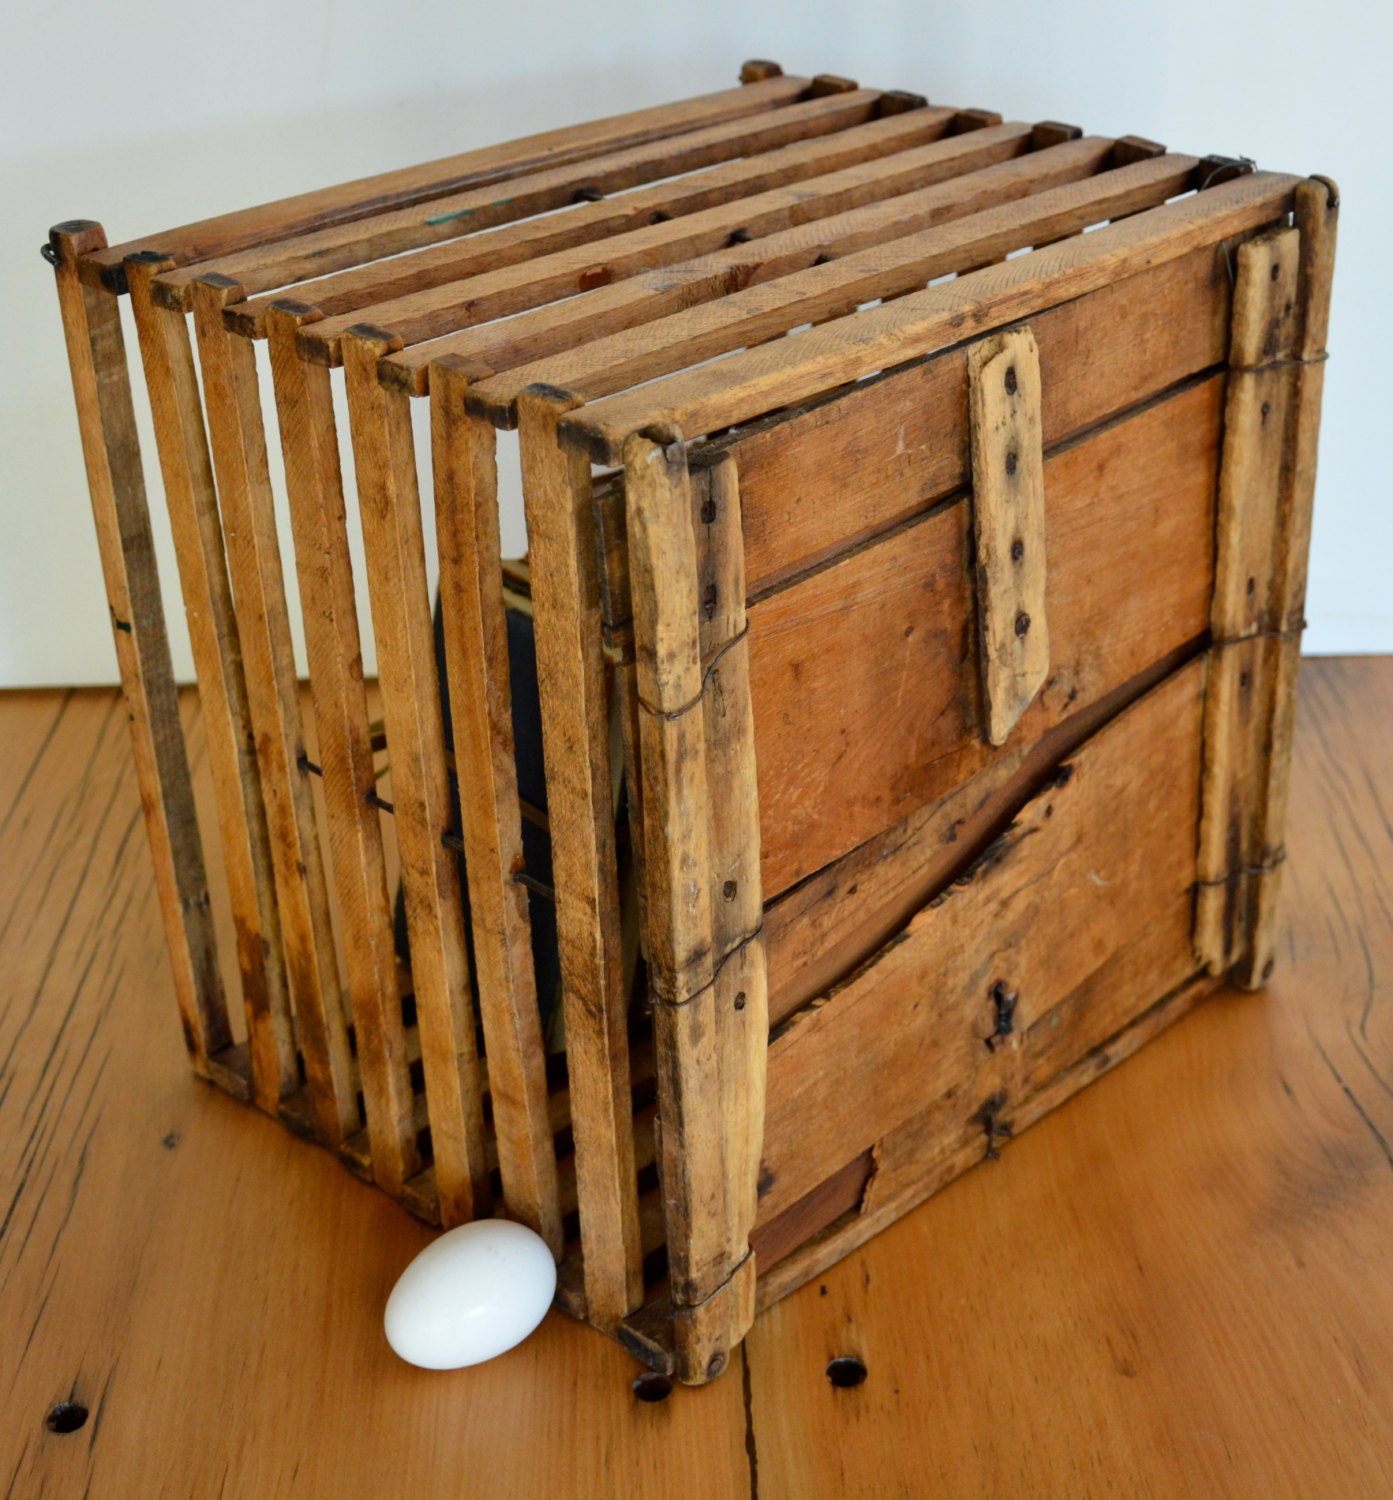 40 best Antique/ Egg Carriers images on Pinterest | Wooden ...  |Egg Crate Shelving